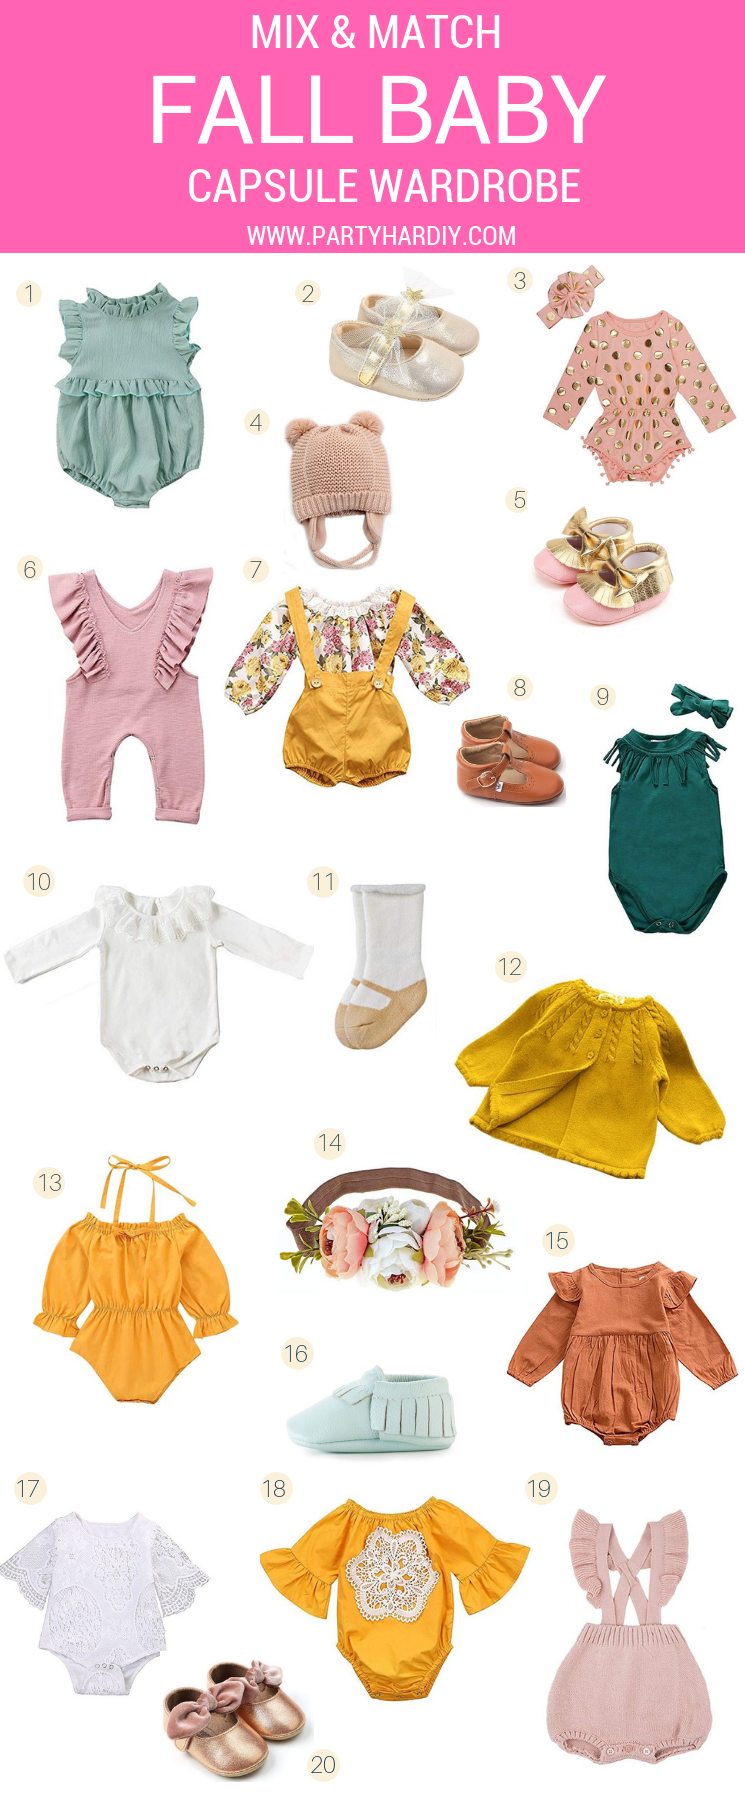 Now that I've got a super cute little baby, I'm so excited for all the adorable outfits I can put her in! I've rounded up some of the cutest fall looks for your sweet little babe, which I think adds up to the perfect fall capsule wardrobe. The best part is that all these items can be found on Amazon, PLUS most of them are Prime! So what are you waiting for? Let's go shopping!